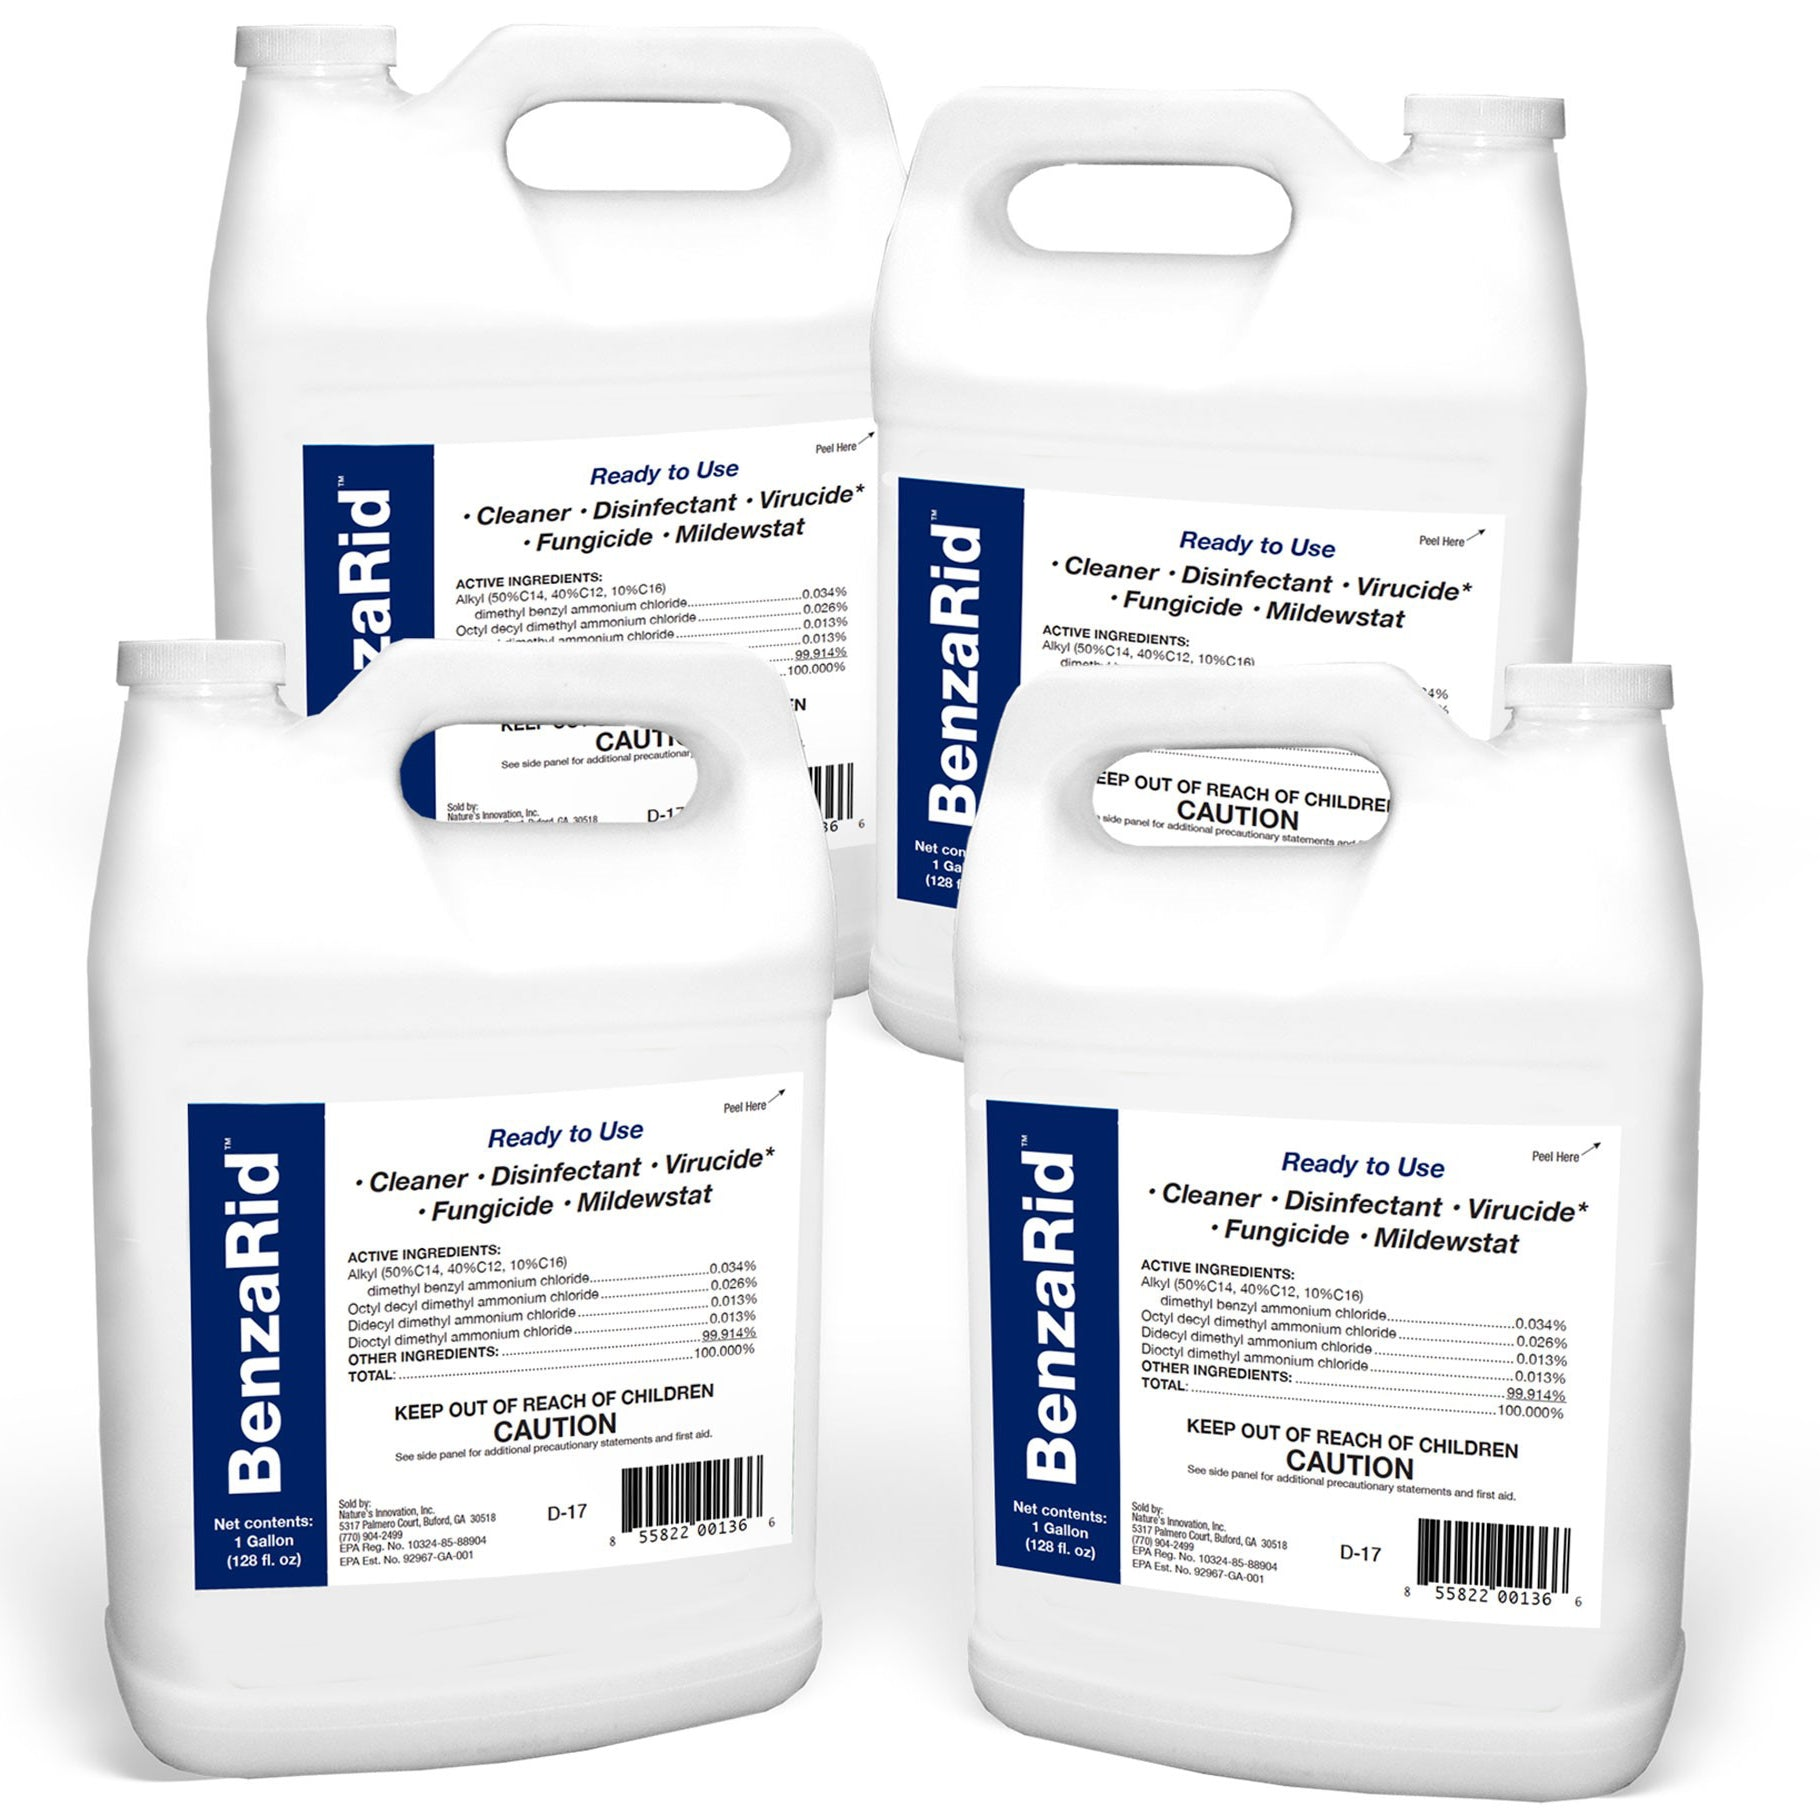 BenzaRid Hospital Grade Cleaner - Disinfectant, Virucide, Fungicide - 4 Gallons